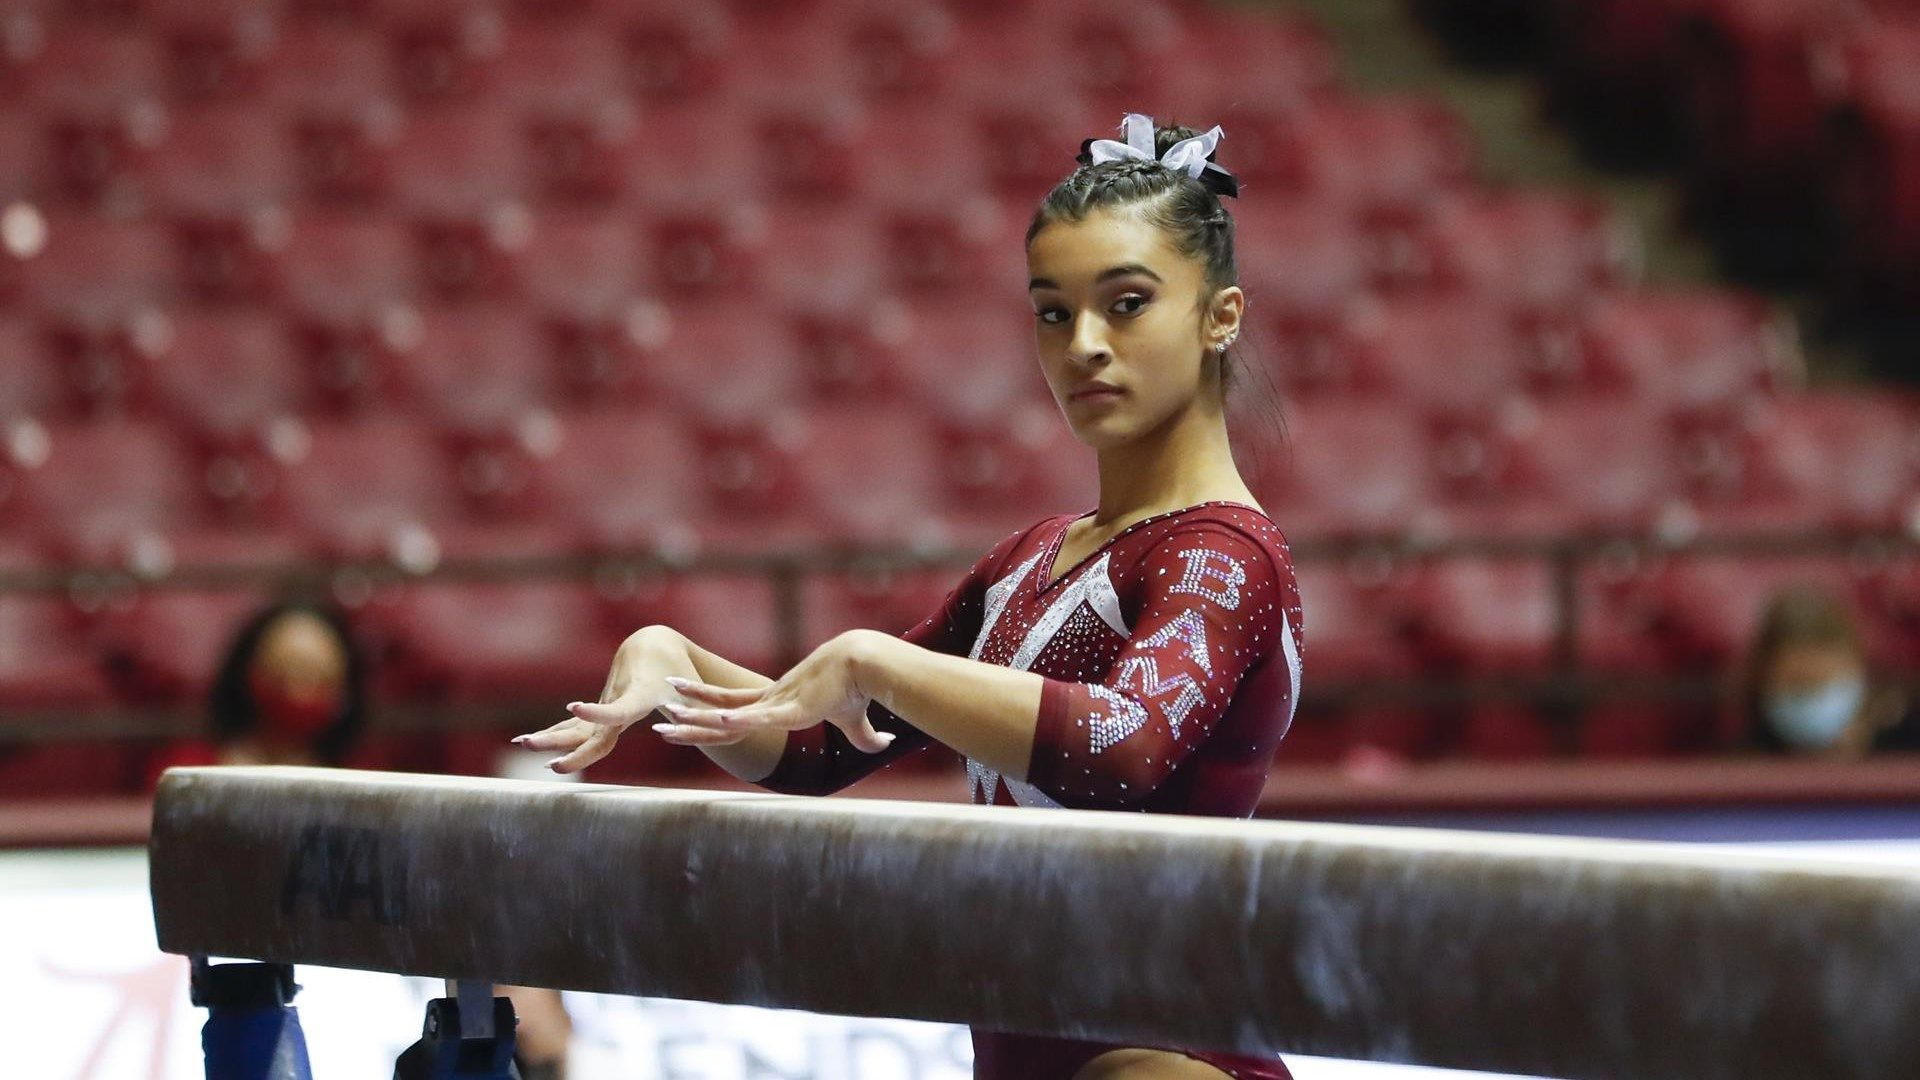 Top SEC gymnast Blanco credits her family for success